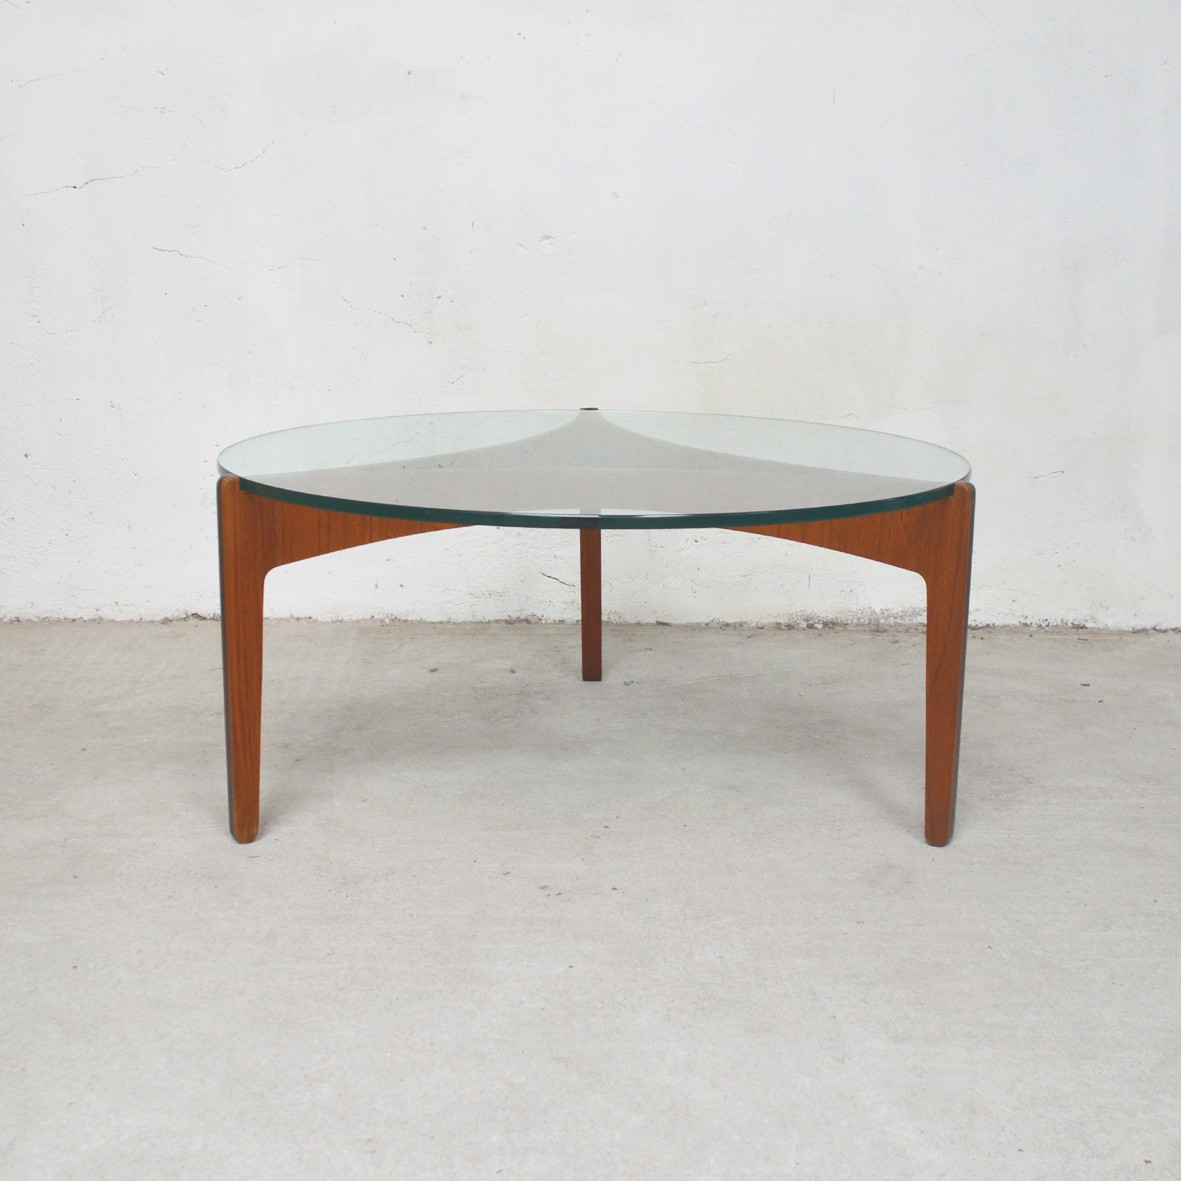 Vintage Danish teak and glass coffee table - 1960s ...